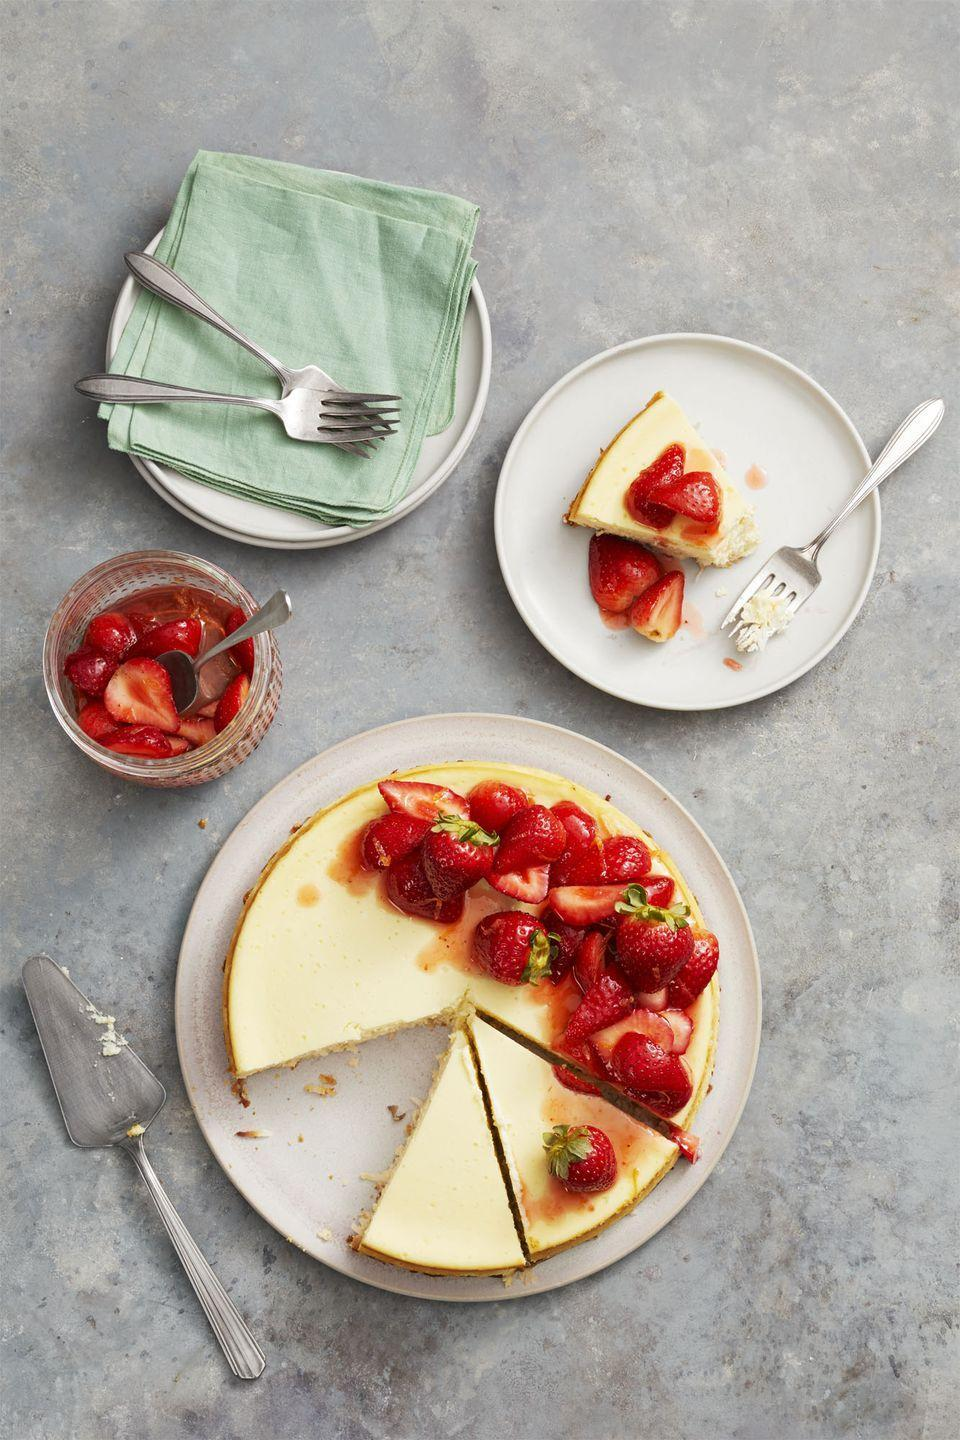 """<p>Dress up this gluten-free cheesecake with sugary-sweet strawberries to make a dessert fit for the season.</p><p><em><a href=""""https://www.goodhousekeeping.com/food-recipes/dessert/a26783658/strawberry-coconut-crust-cheesecake-recipe/"""" rel=""""nofollow noopener"""" target=""""_blank"""" data-ylk=""""slk:Get the recipe for Strawberry Coconut-Crust Cheesecake »"""" class=""""link rapid-noclick-resp"""">Get the recipe for Strawberry Coconut-Crust Cheesecake »</a></em></p><p><strong>RELATED:</strong> <a href=""""https://www.goodhousekeeping.com/food-recipes/dessert/g4299/strawberry-desserts/"""" rel=""""nofollow noopener"""" target=""""_blank"""" data-ylk=""""slk:20 Sweet Strawberry Desserts for Spring and Summer"""" class=""""link rapid-noclick-resp"""">20 Sweet Strawberry Desserts for Spring and Summer</a></p>"""